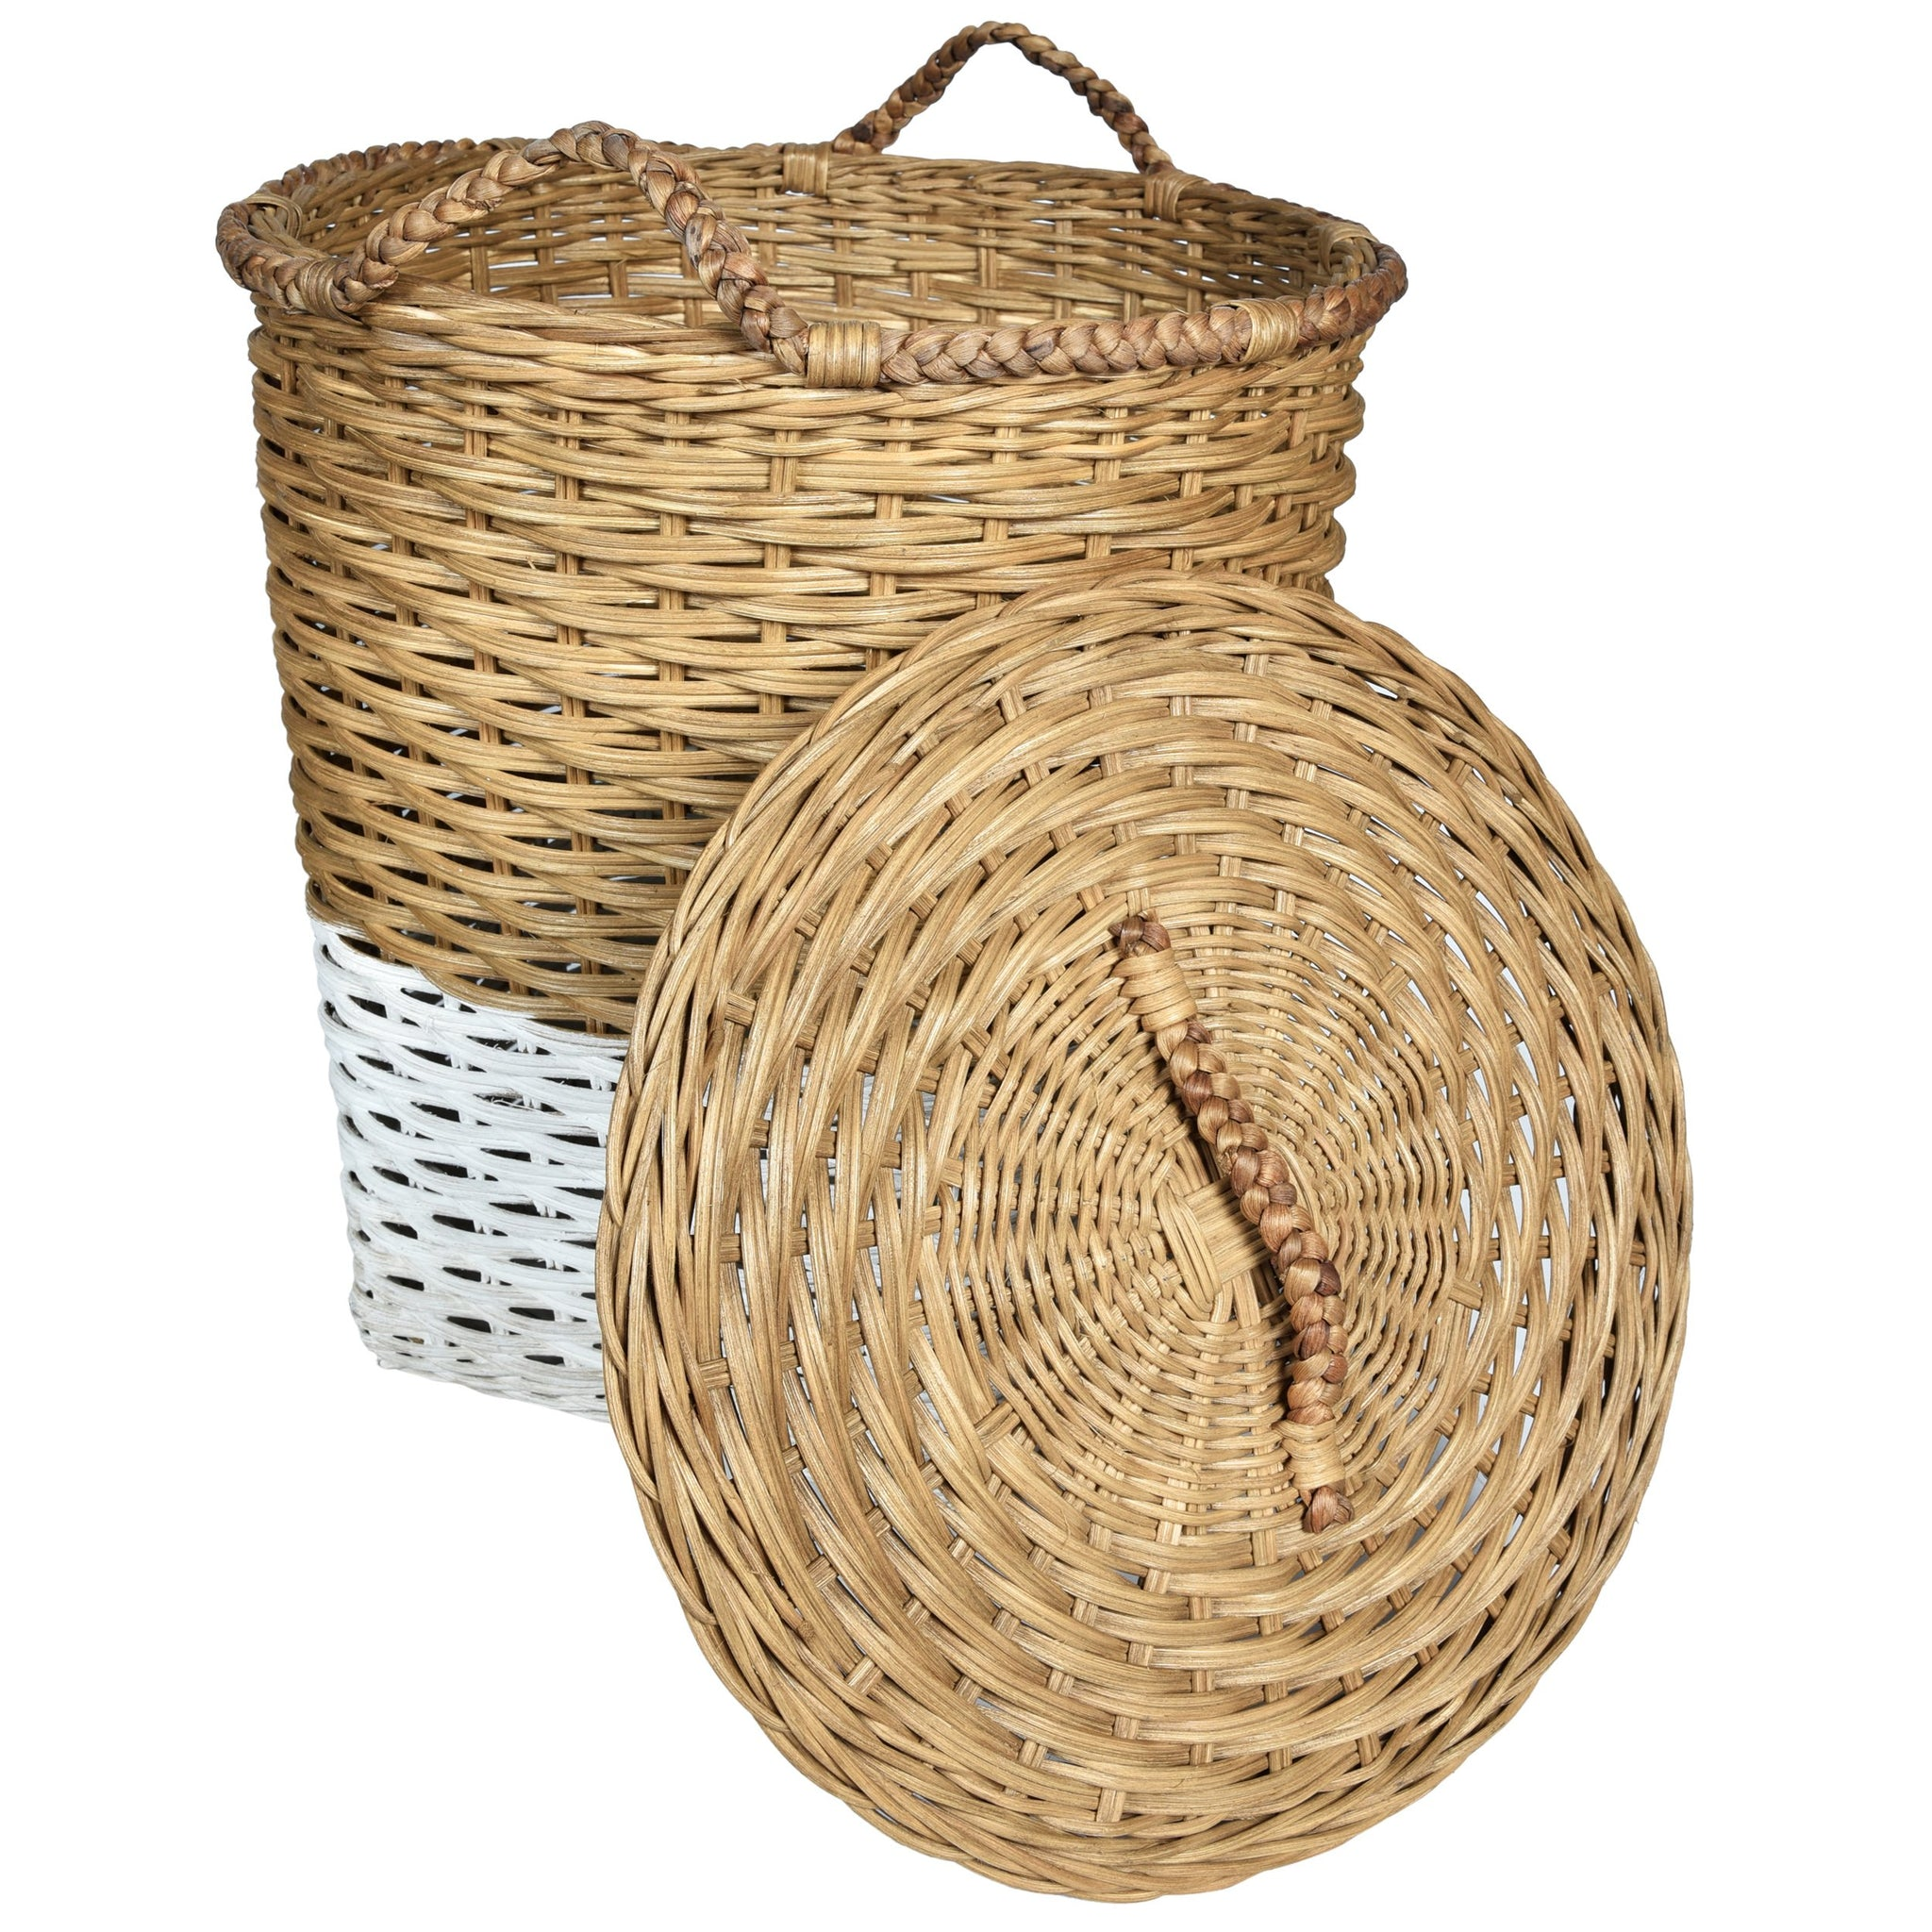 MOD Laundry Storage Basket with Lid - Natural & White - Nestasia Home Decor